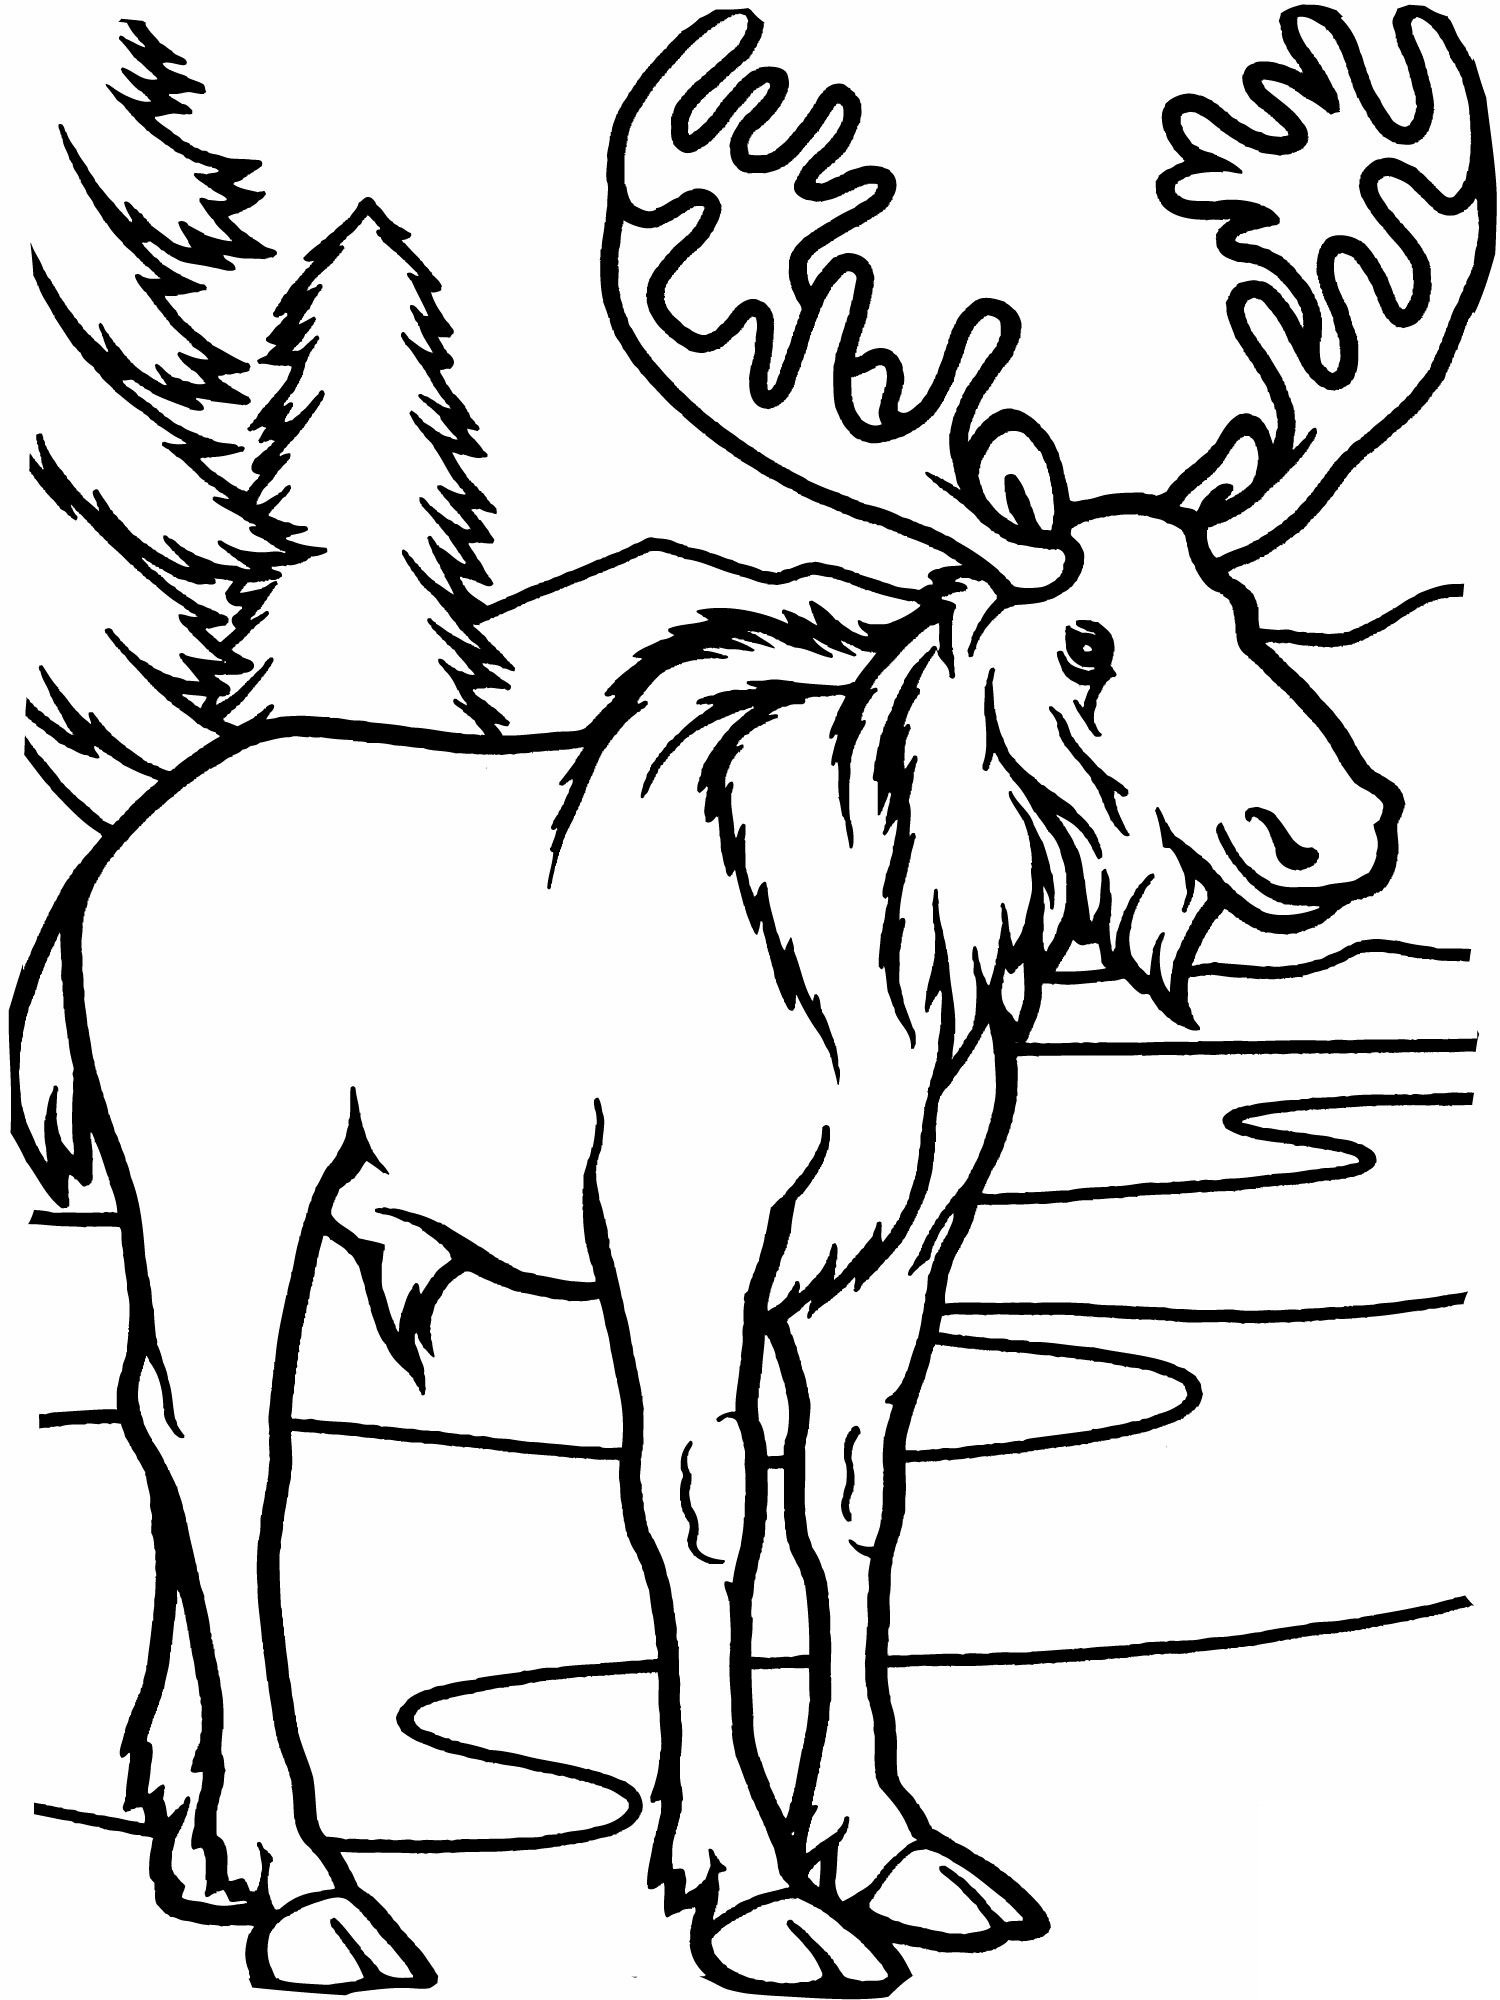 Cute moose coloring pages ~ Moose Coloring Pages | 360ColoringPages